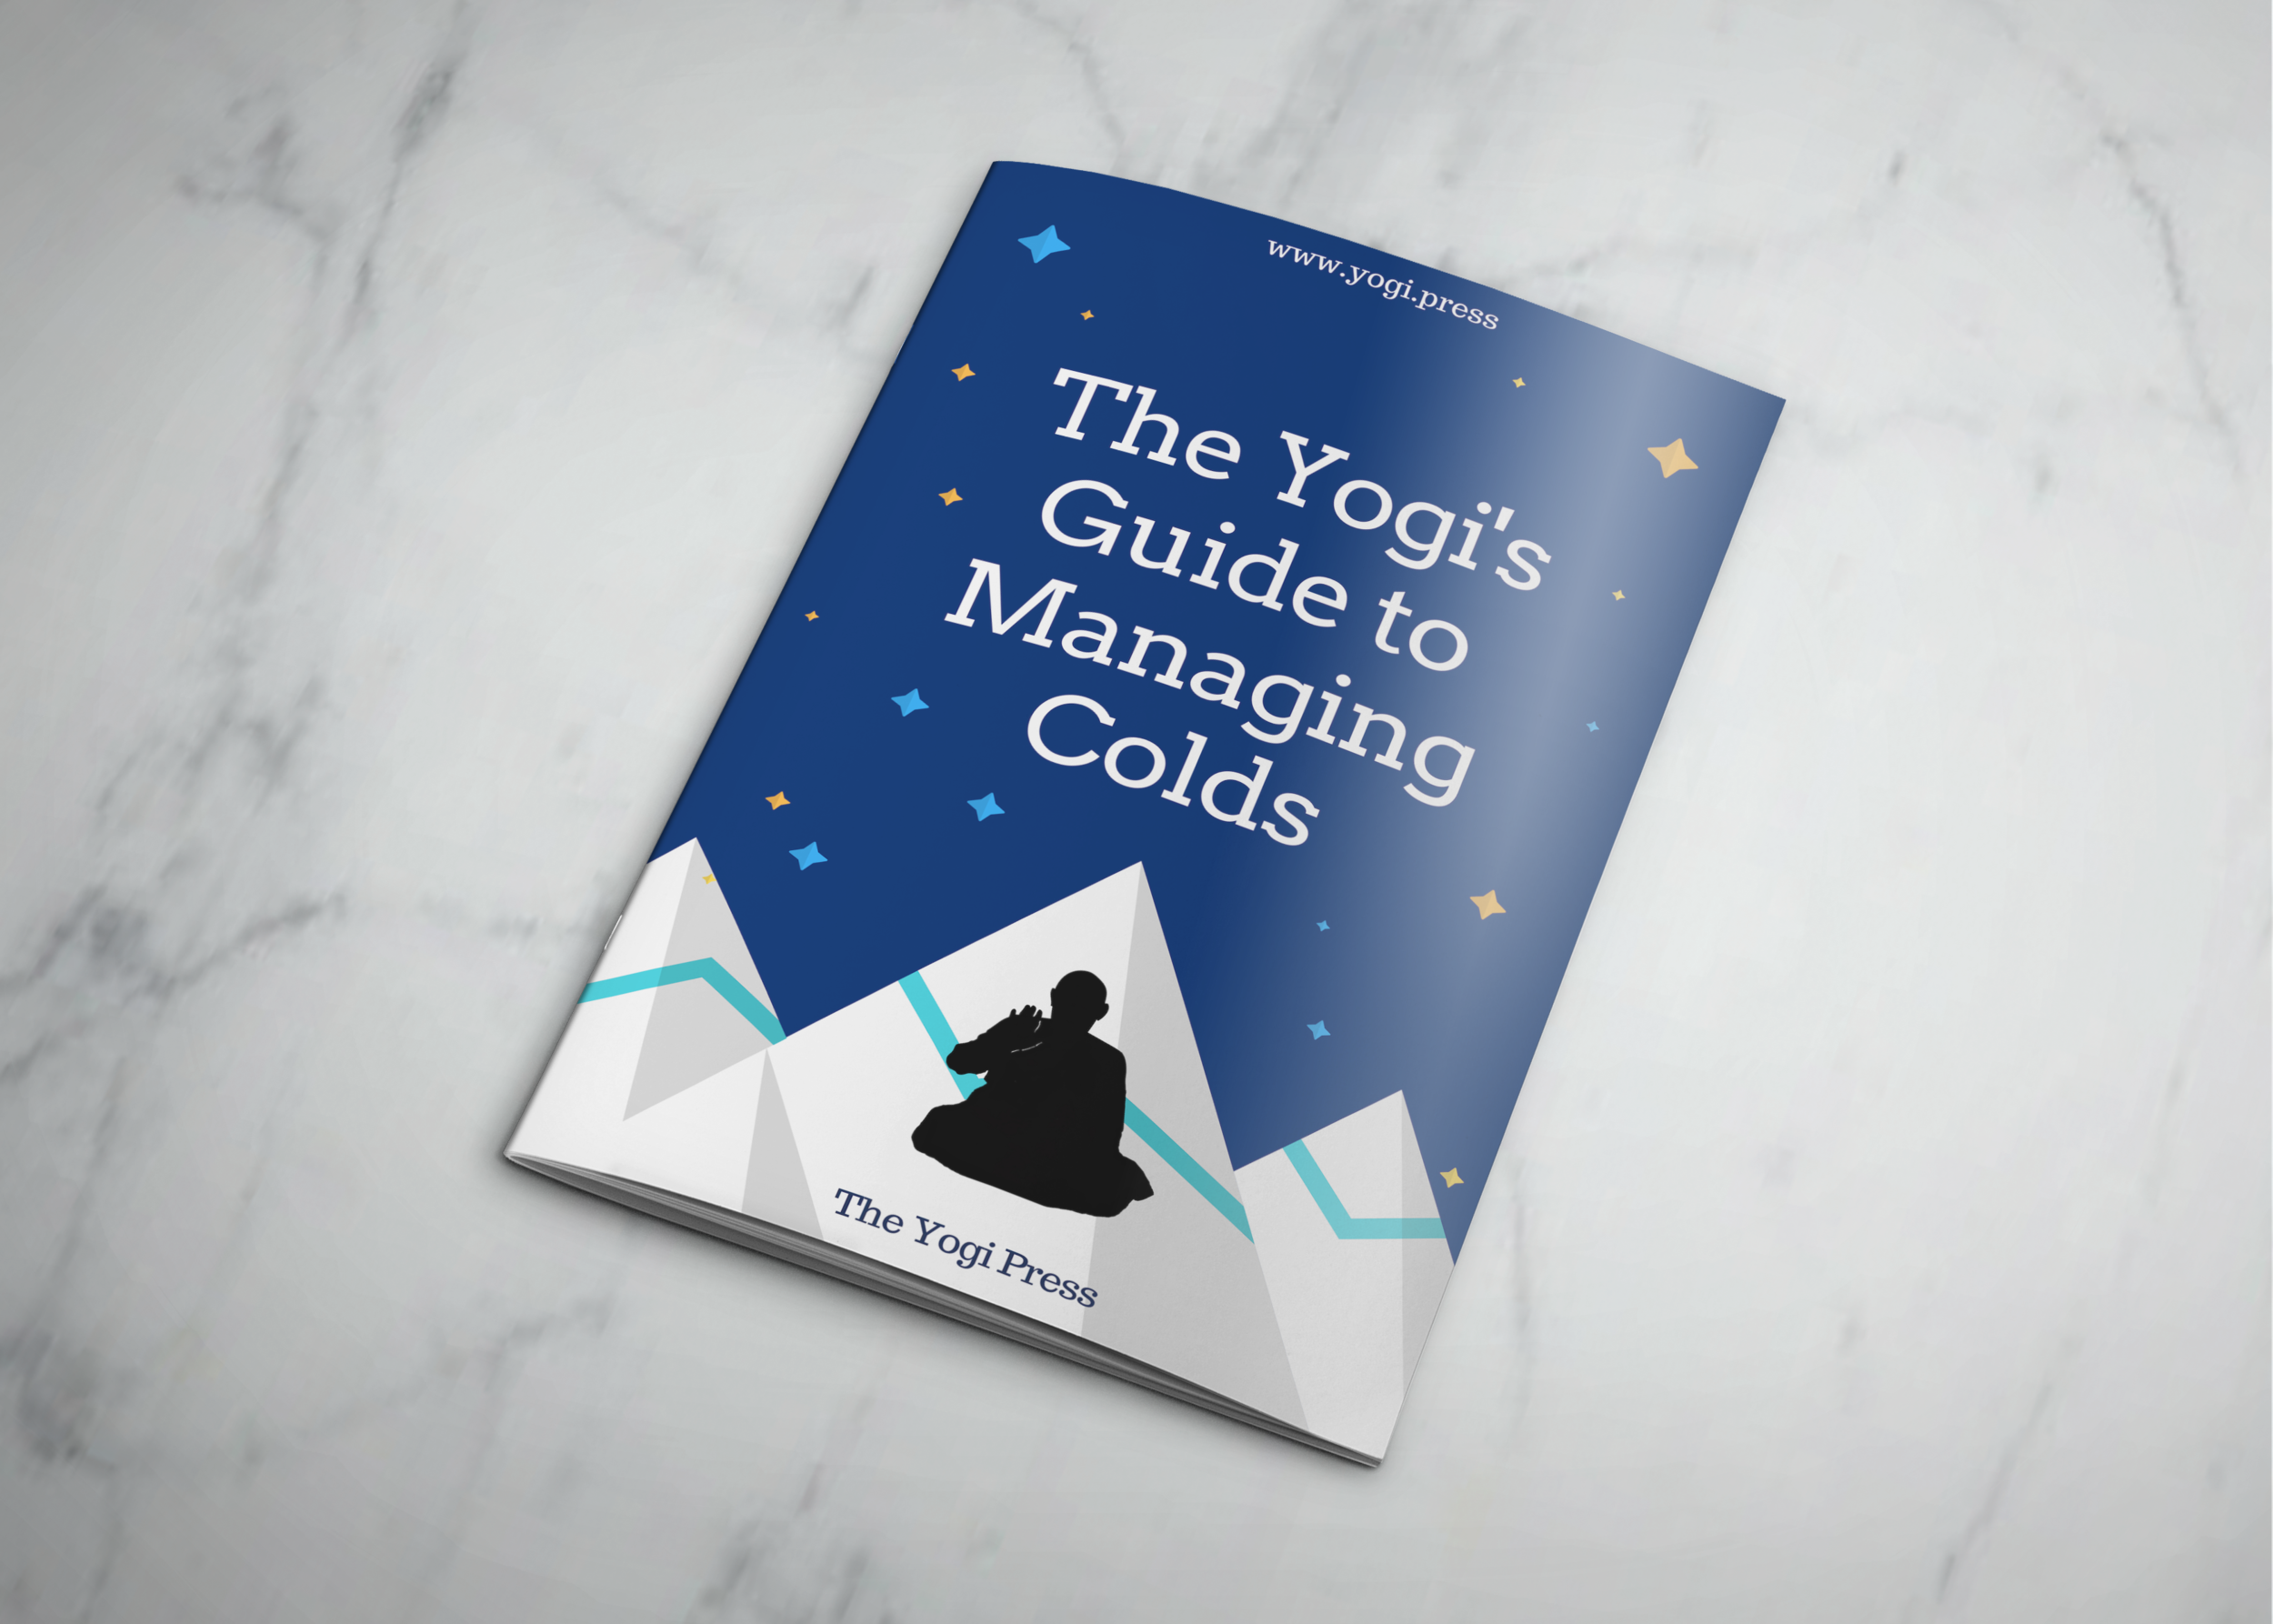 managing-colds.png